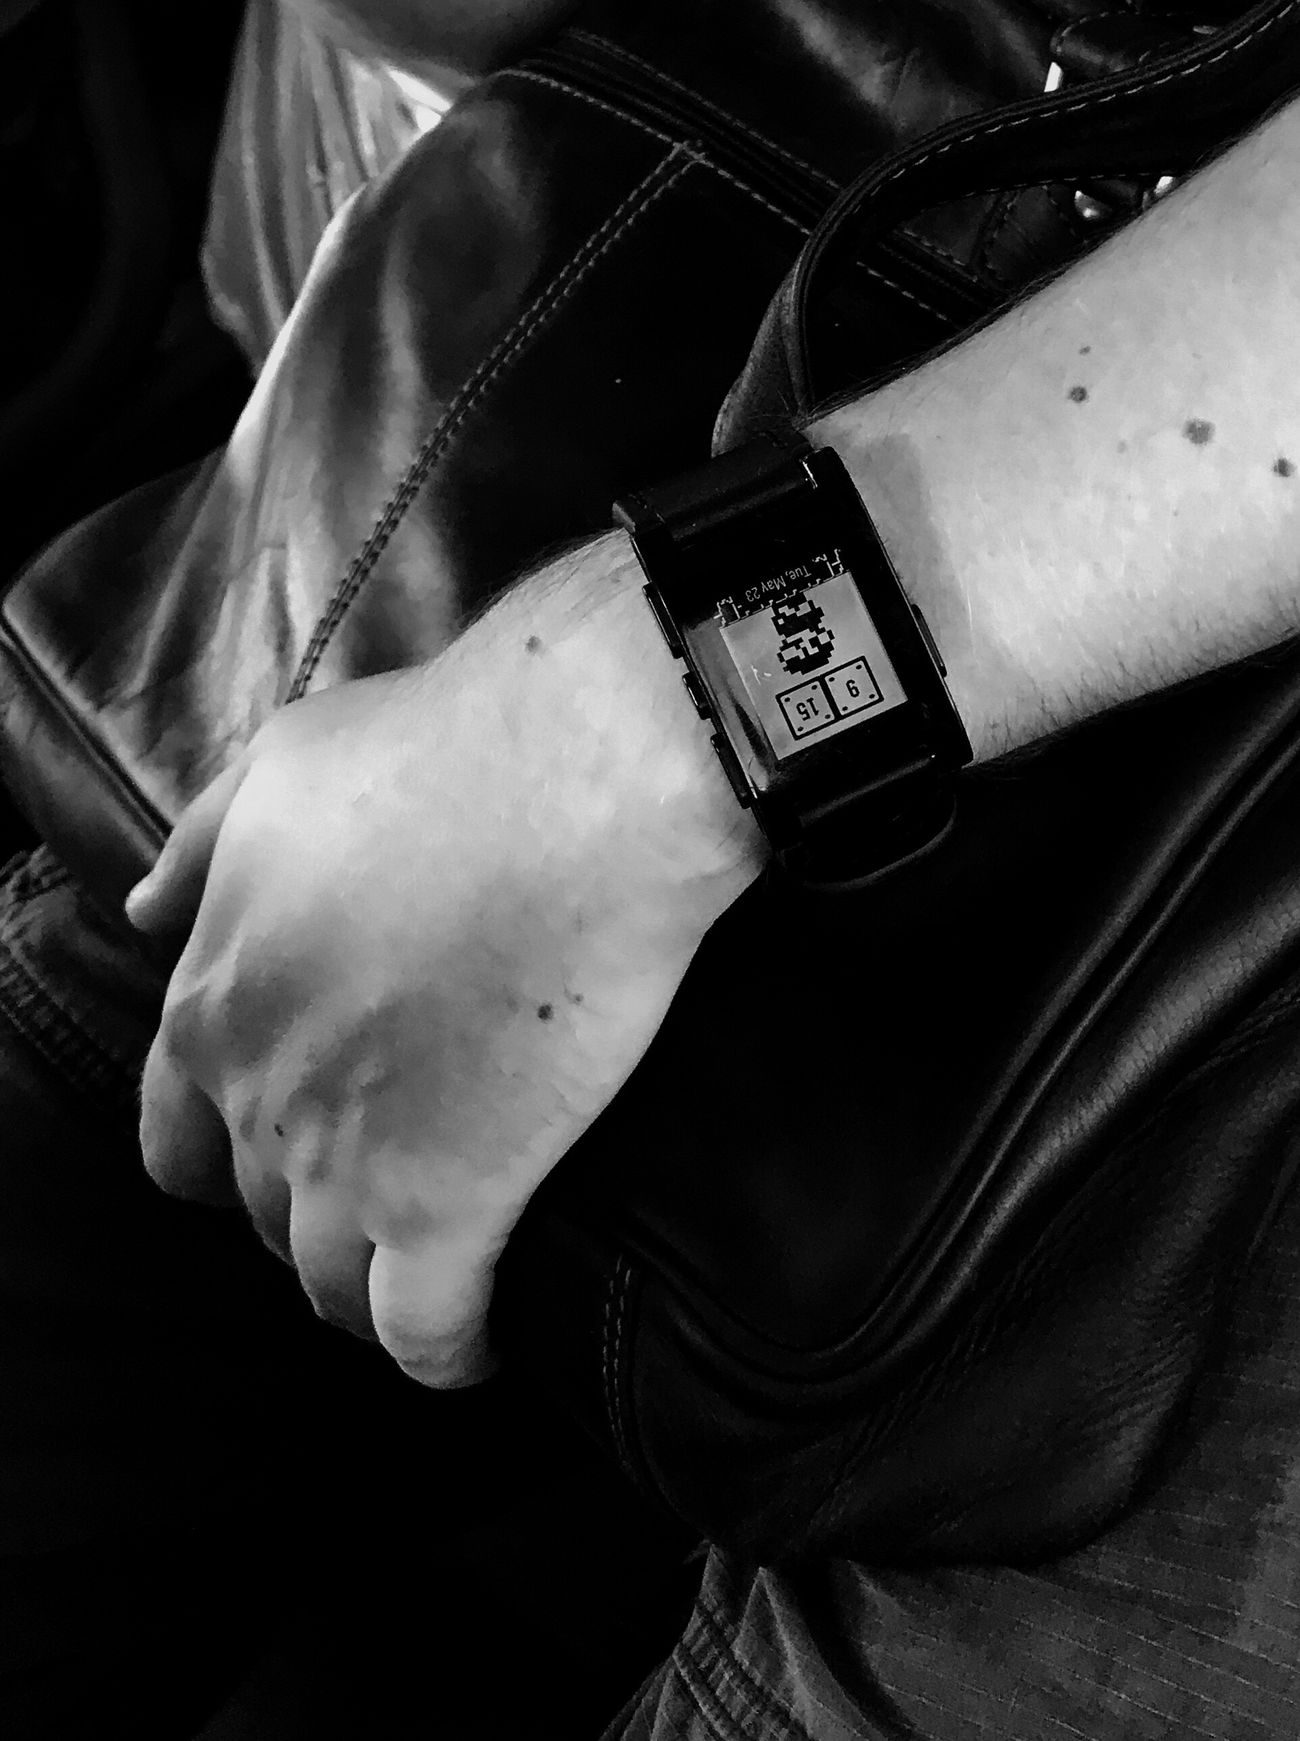 Mario's time Wristwatch Real People Human Body Part One Person Time Human Hand Watch Lifestyles Clock Picoftheday Bnw_collection EyeEm Best Shots - Black + White EyeEm Black Eye4photography  Eye4black&white  NEM Black&white Monochrome Photooftheday Bohemio Look From My Point Of View Street Photography The Street Photographer - 2017 EyeEm Awards Details Of My Life Mario Bros